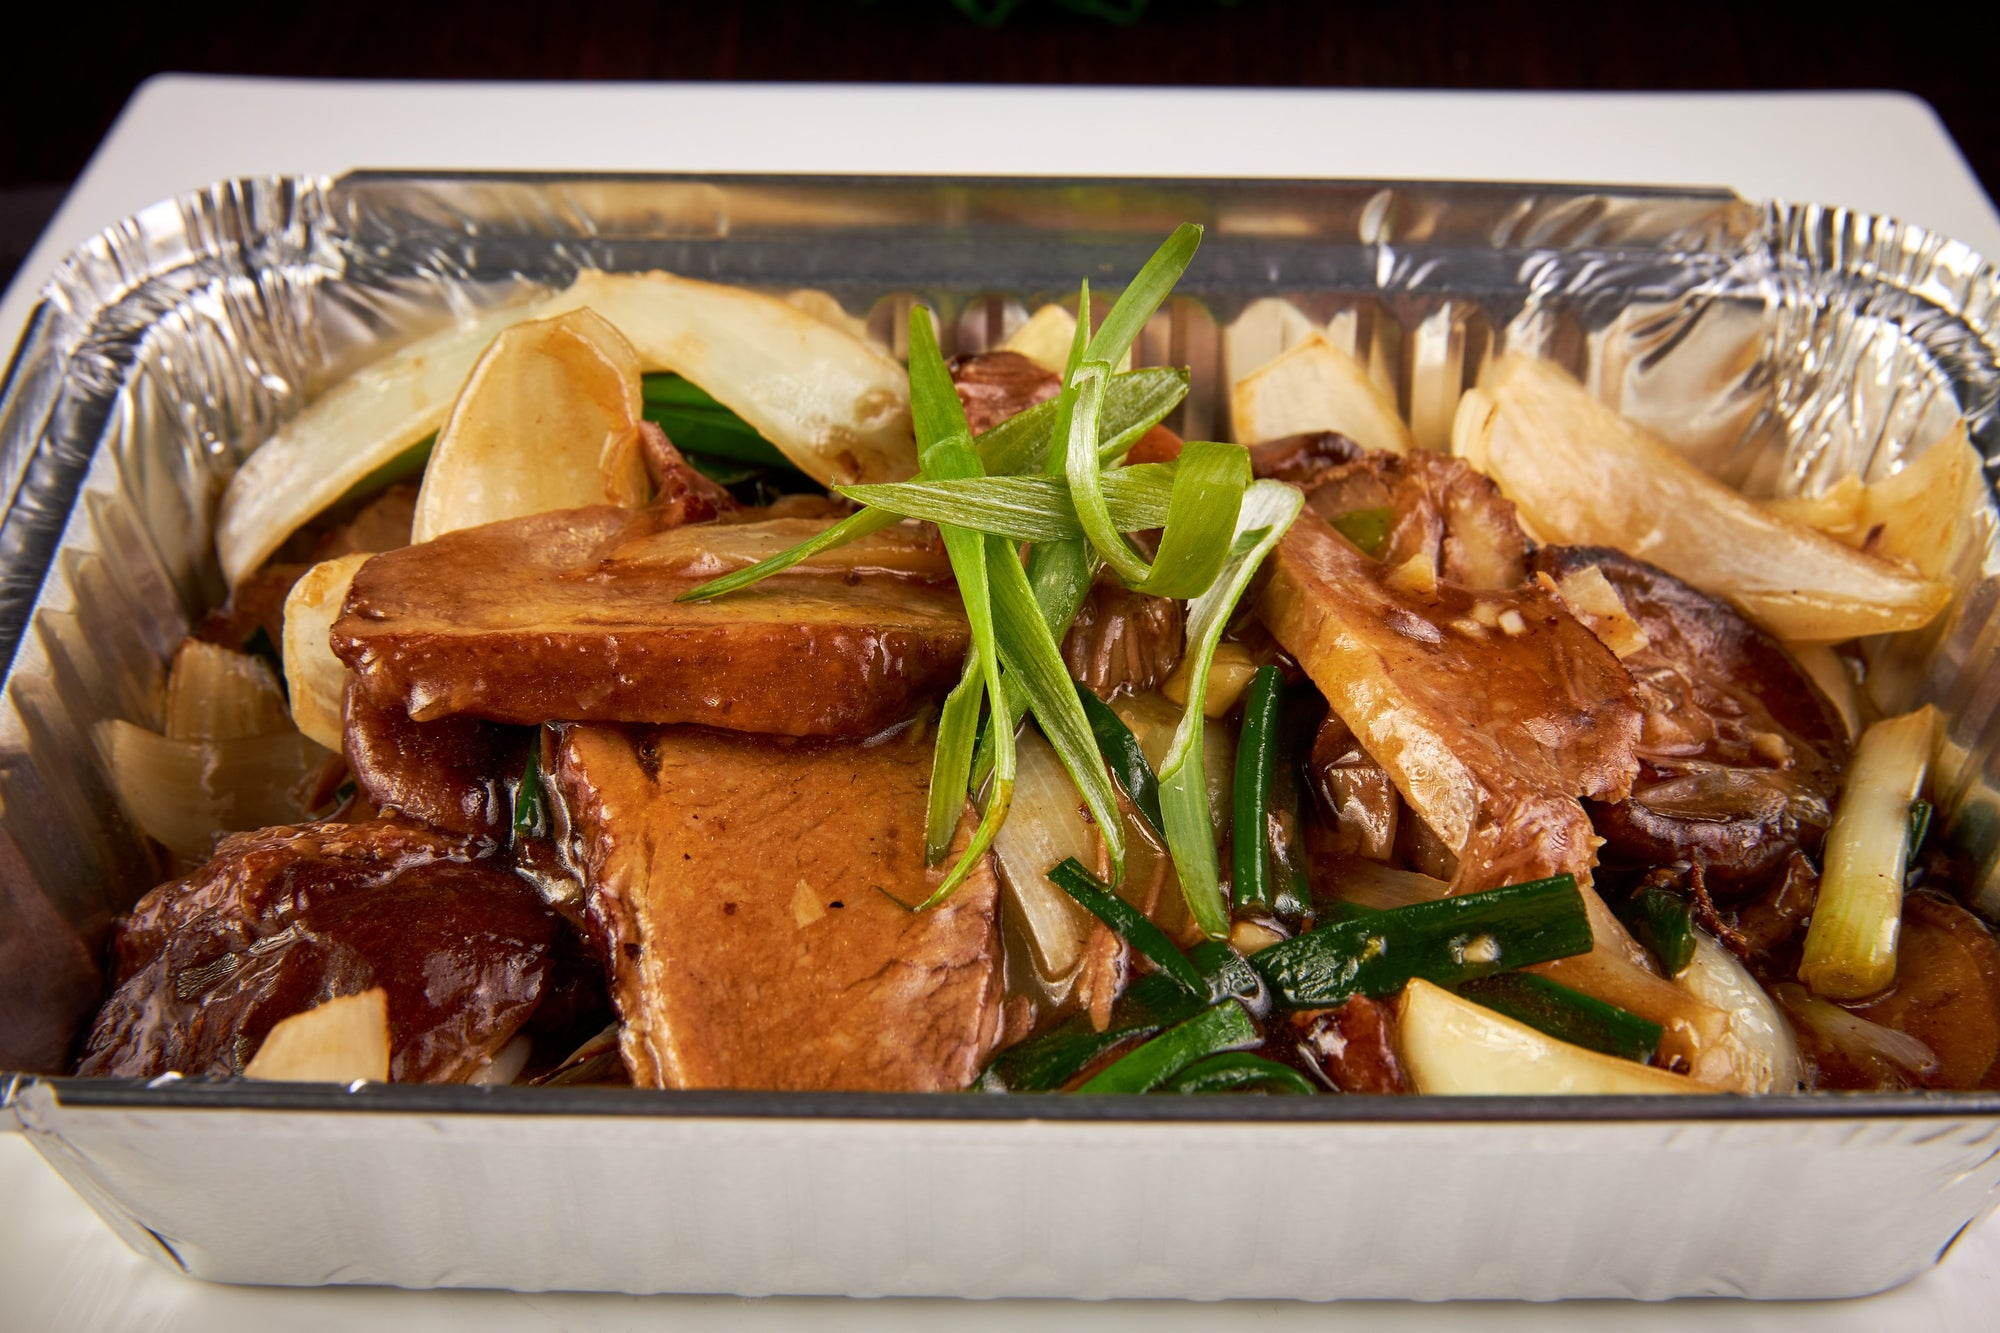 Stir fried Duck in Oyster Sauce